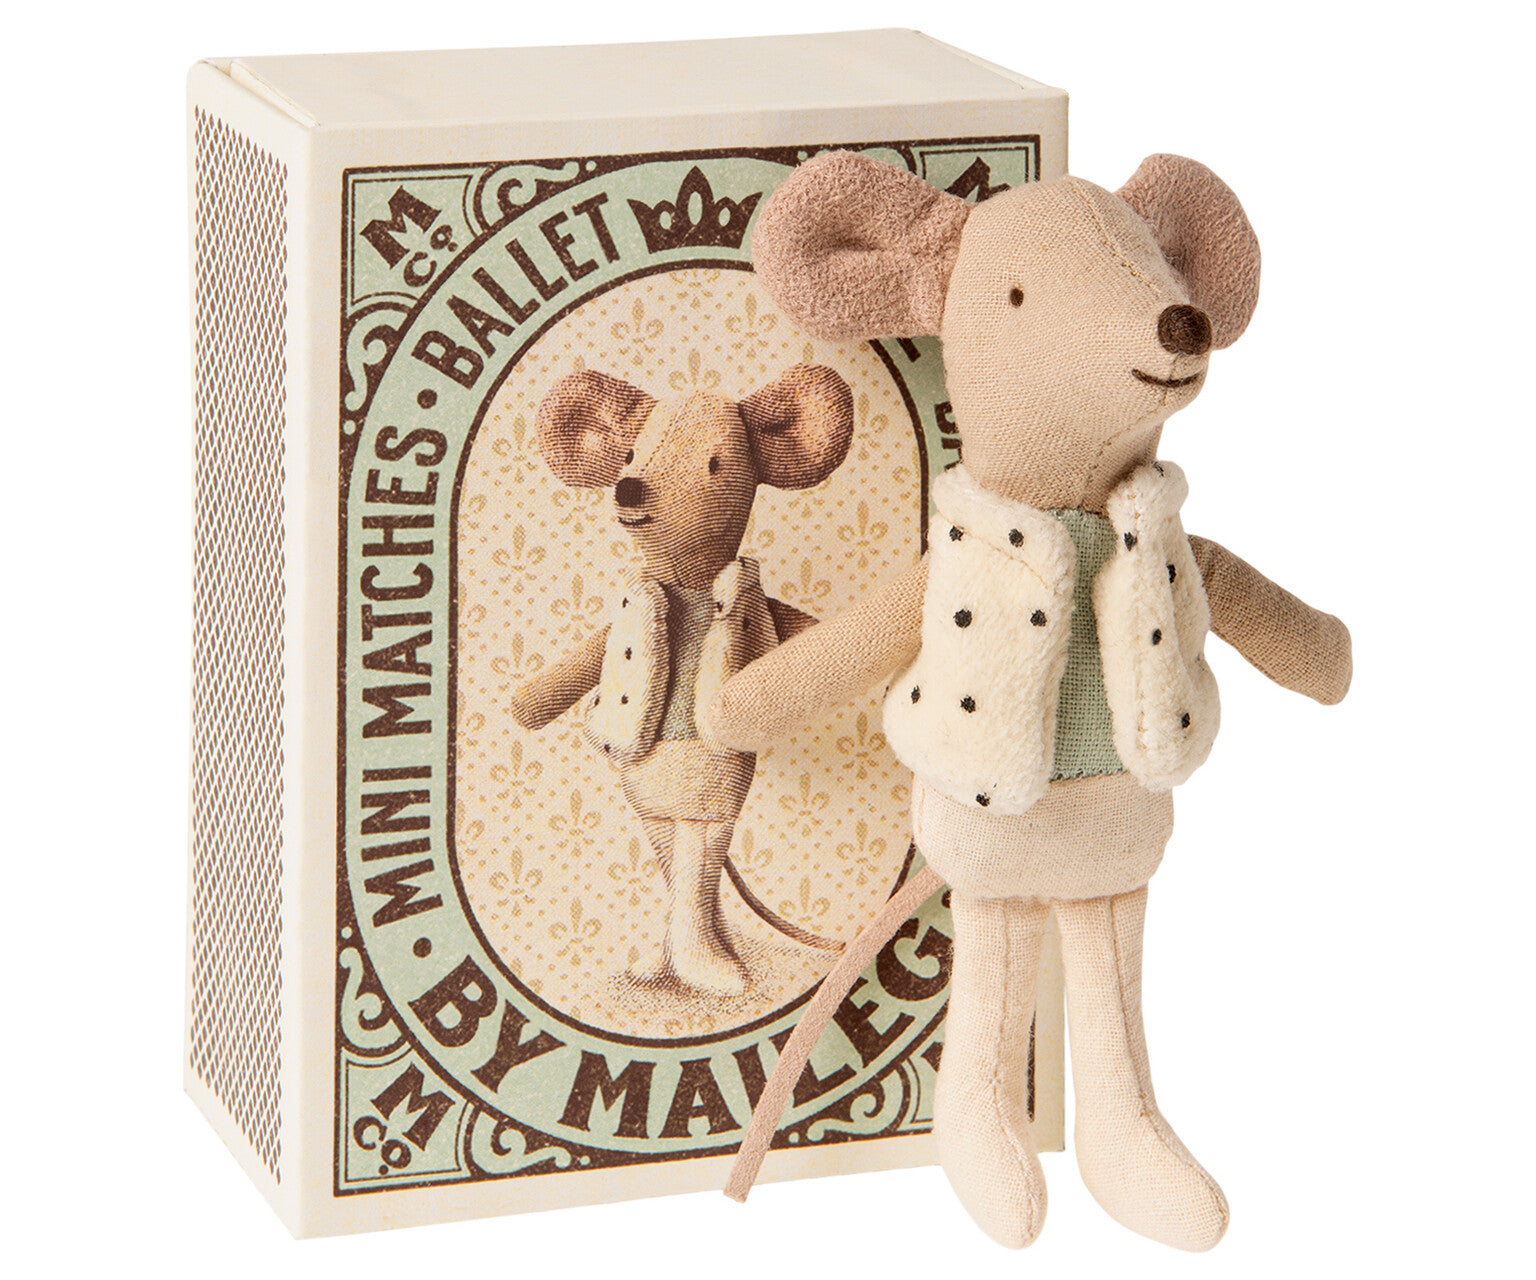 Dancer in matchbox, Little brother mouse - 16-0725-01